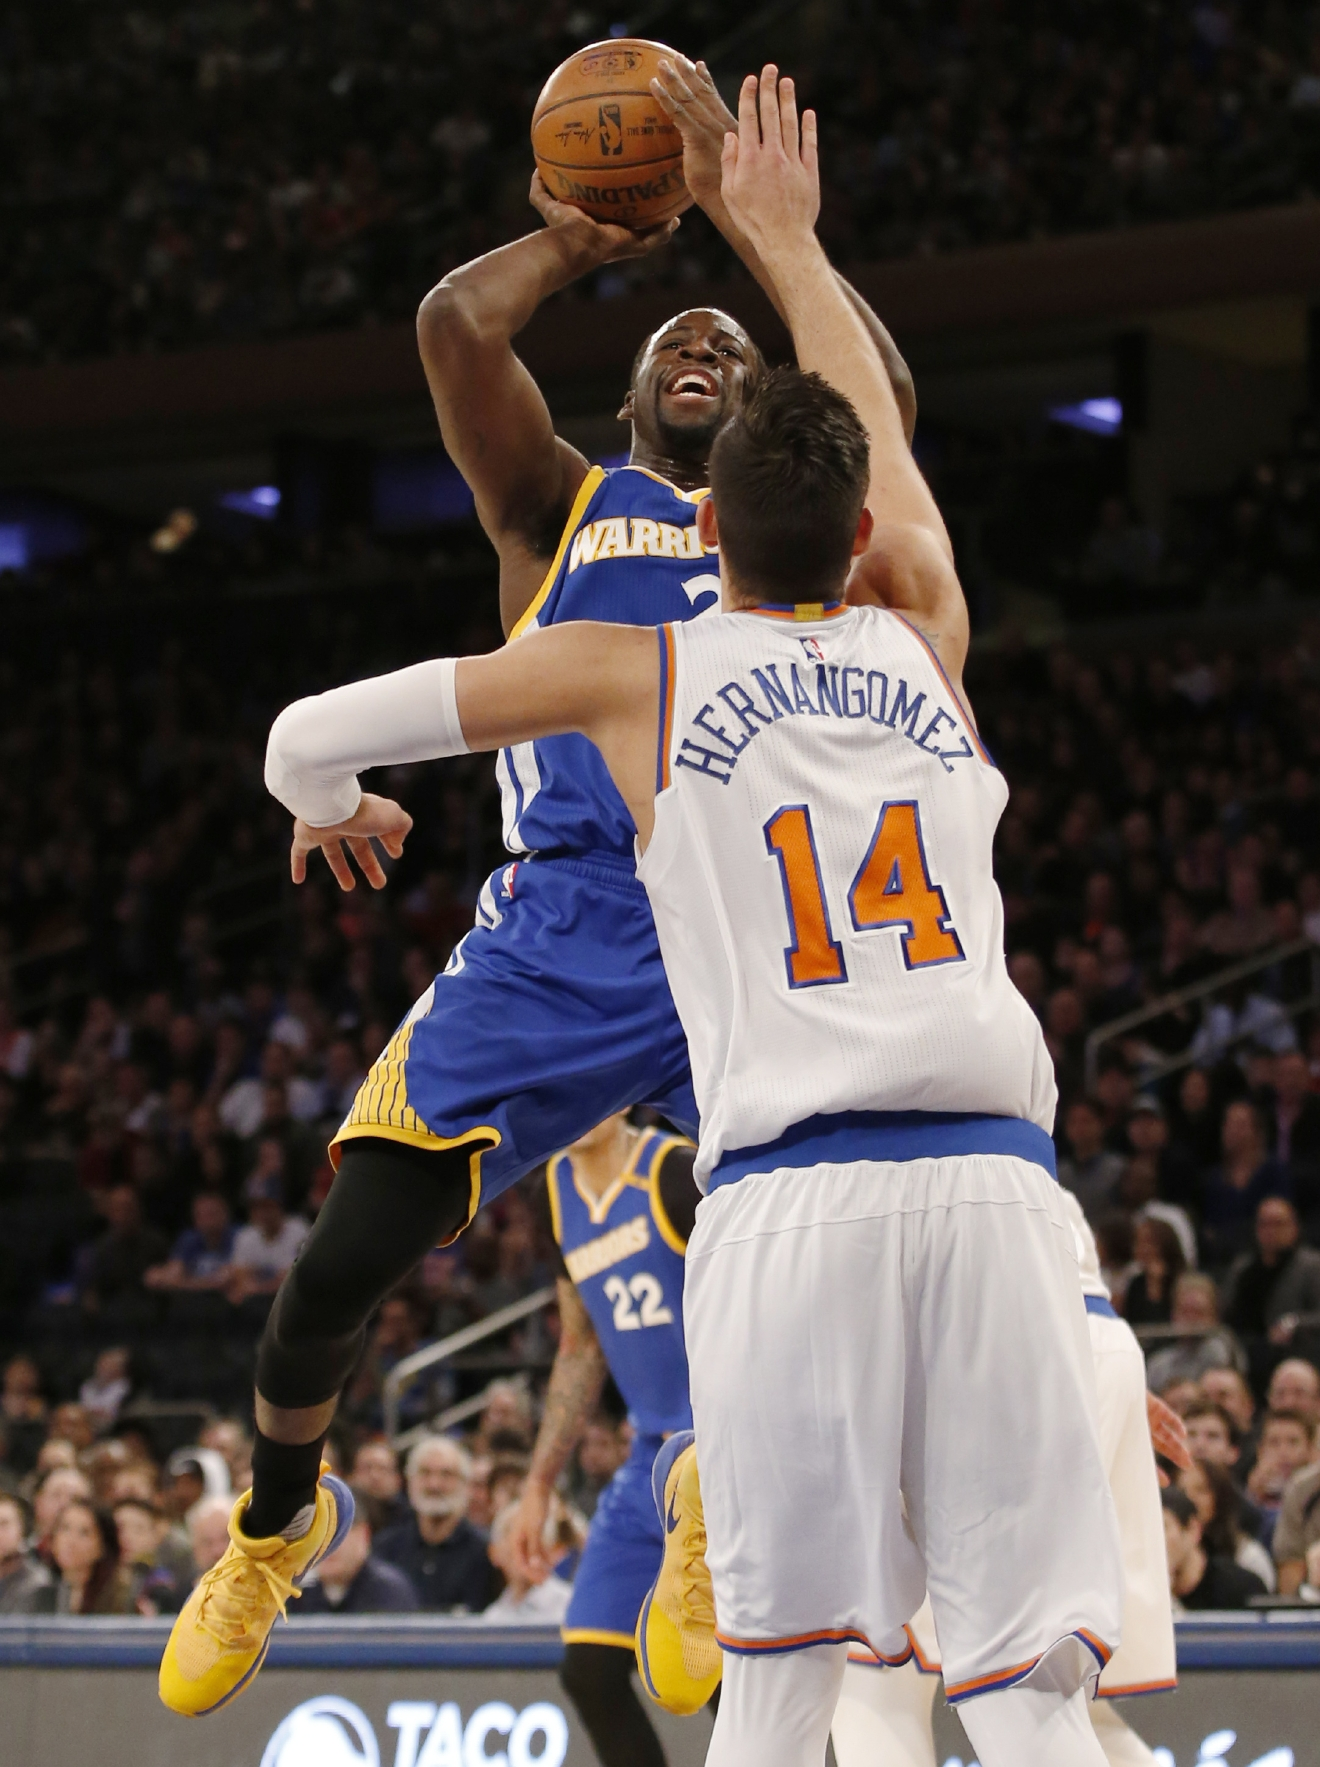 New York Knicks center Willy Hernangomez (14) defends Golden State Warriors forward Draymond Green (23) in the first half of an NBA basketball game at Madison Square Garden in New York, Sunday, March 5, 2017. (AP Photo/Kathy Willens)